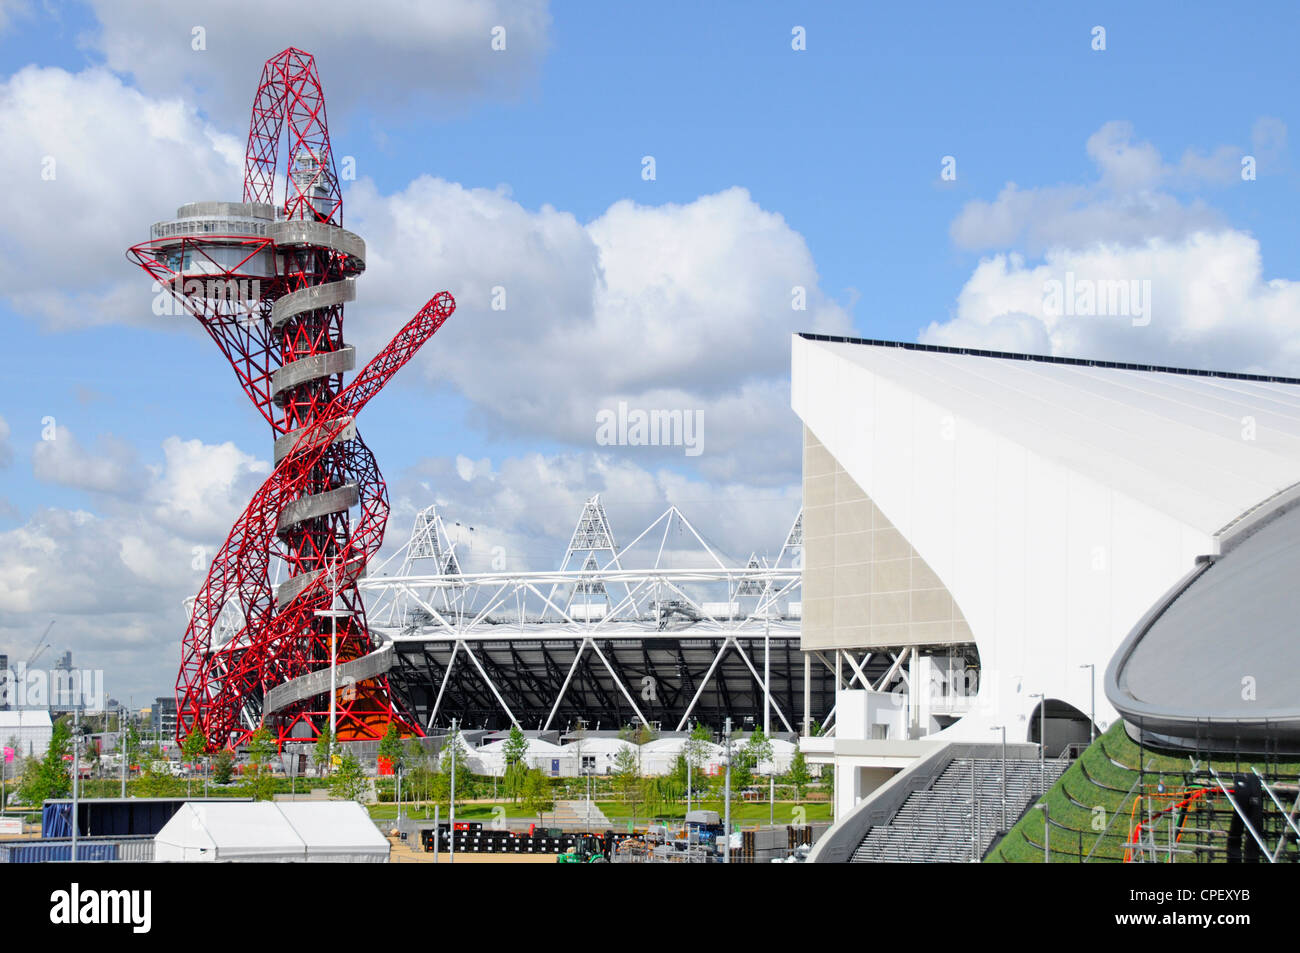 ArcelorMittal Orbit tower with part of main stadium & Aquatic Centre in The 2012 London Olympic park - Stock Image